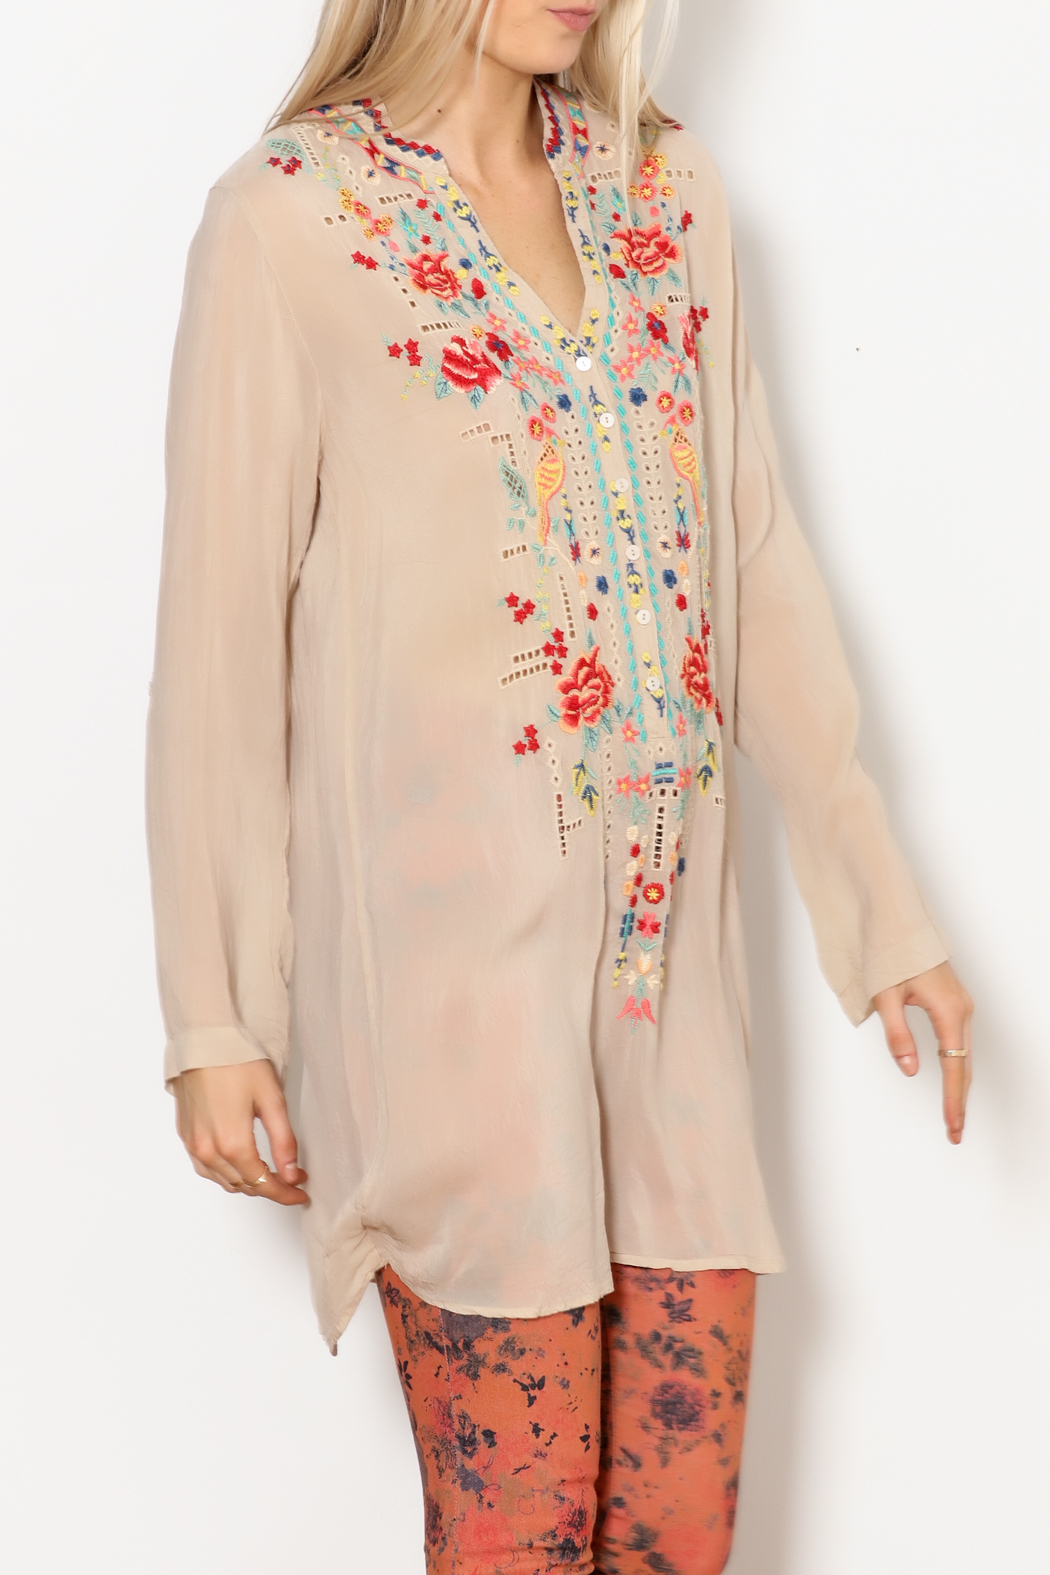 Johnny Was Eyelet Garden Tunic - Main Image